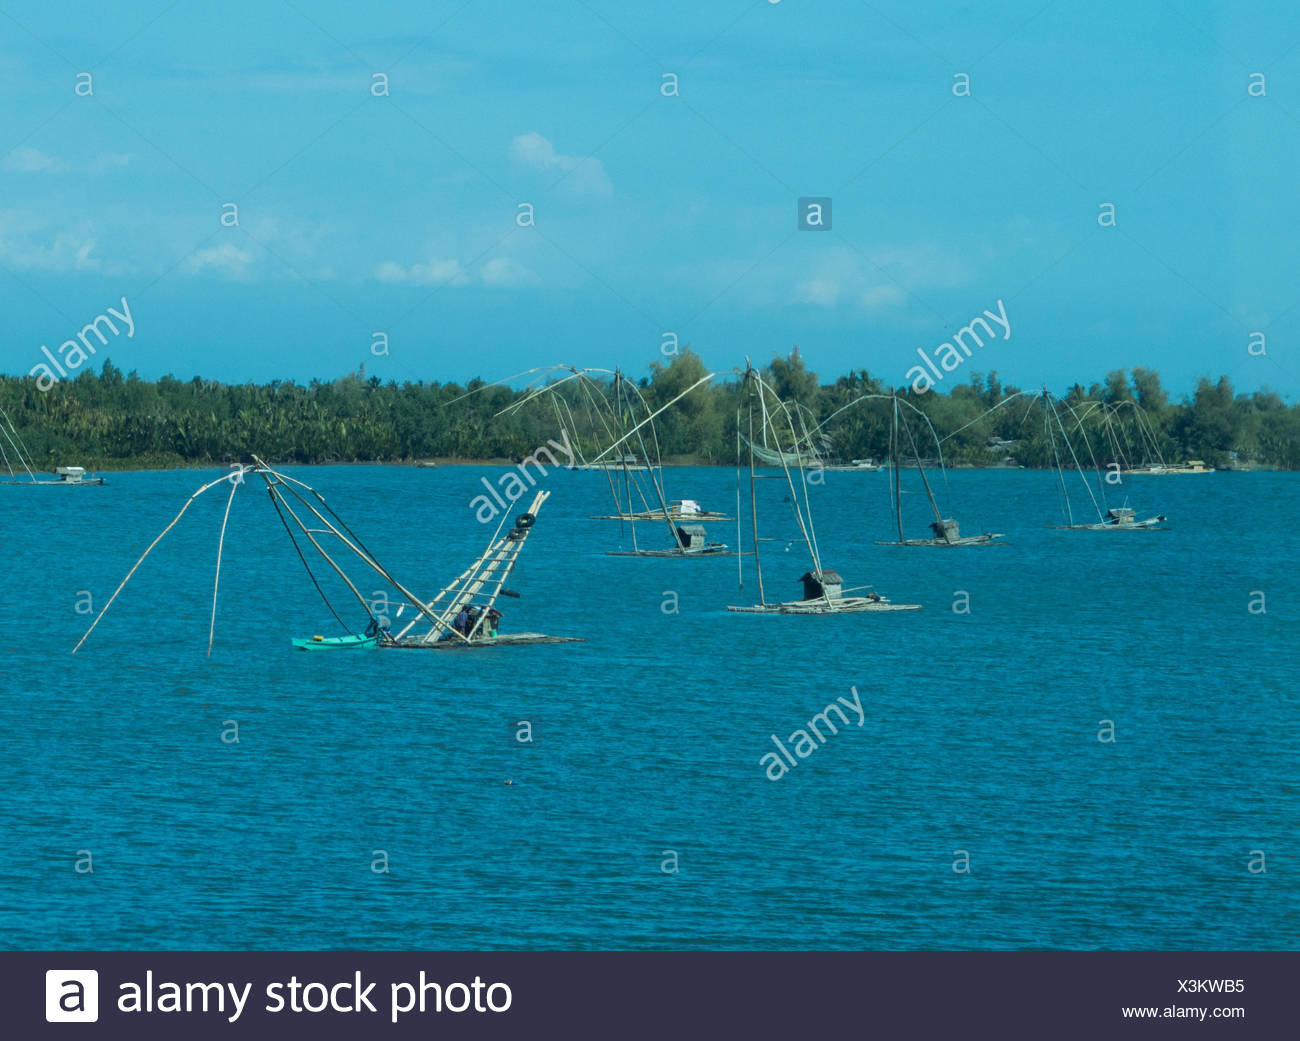 Fishing boats in Sual, Luzon, Philippines - Stock Image